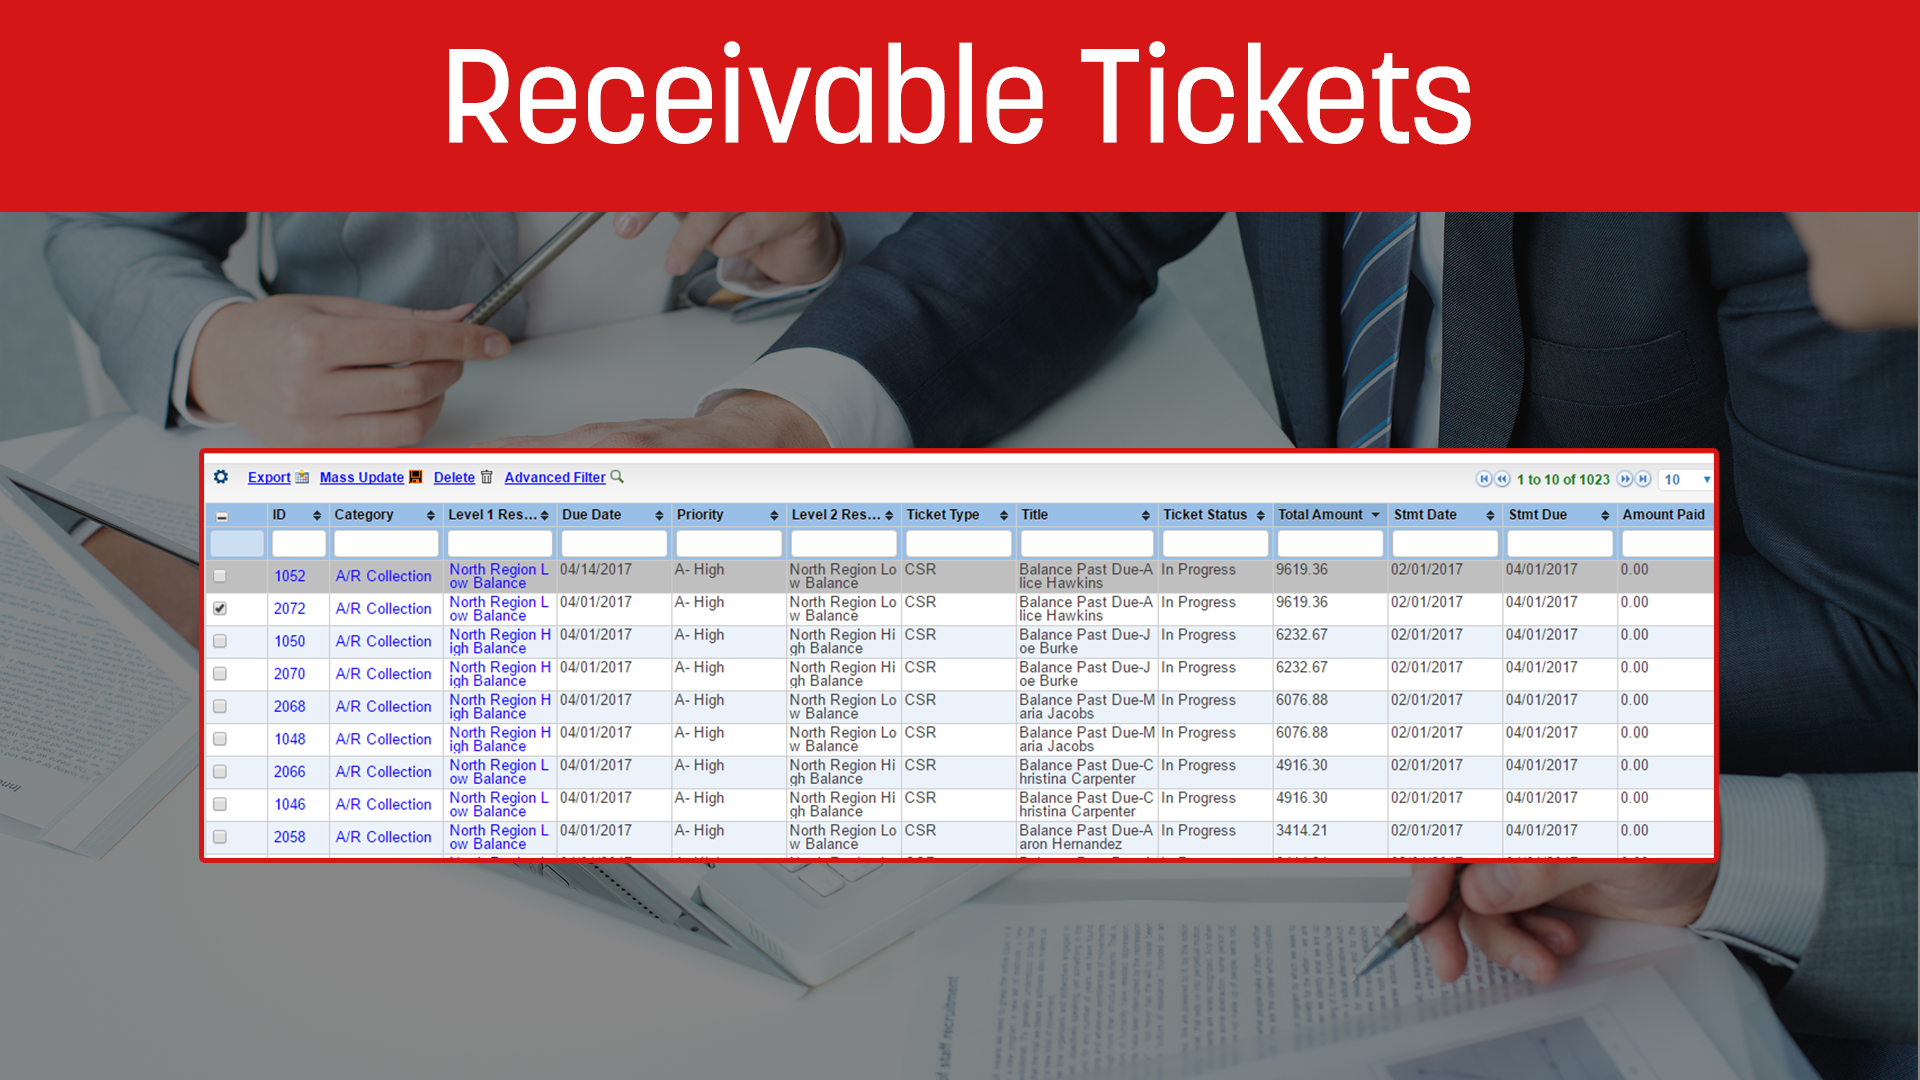 Receivable Tickets